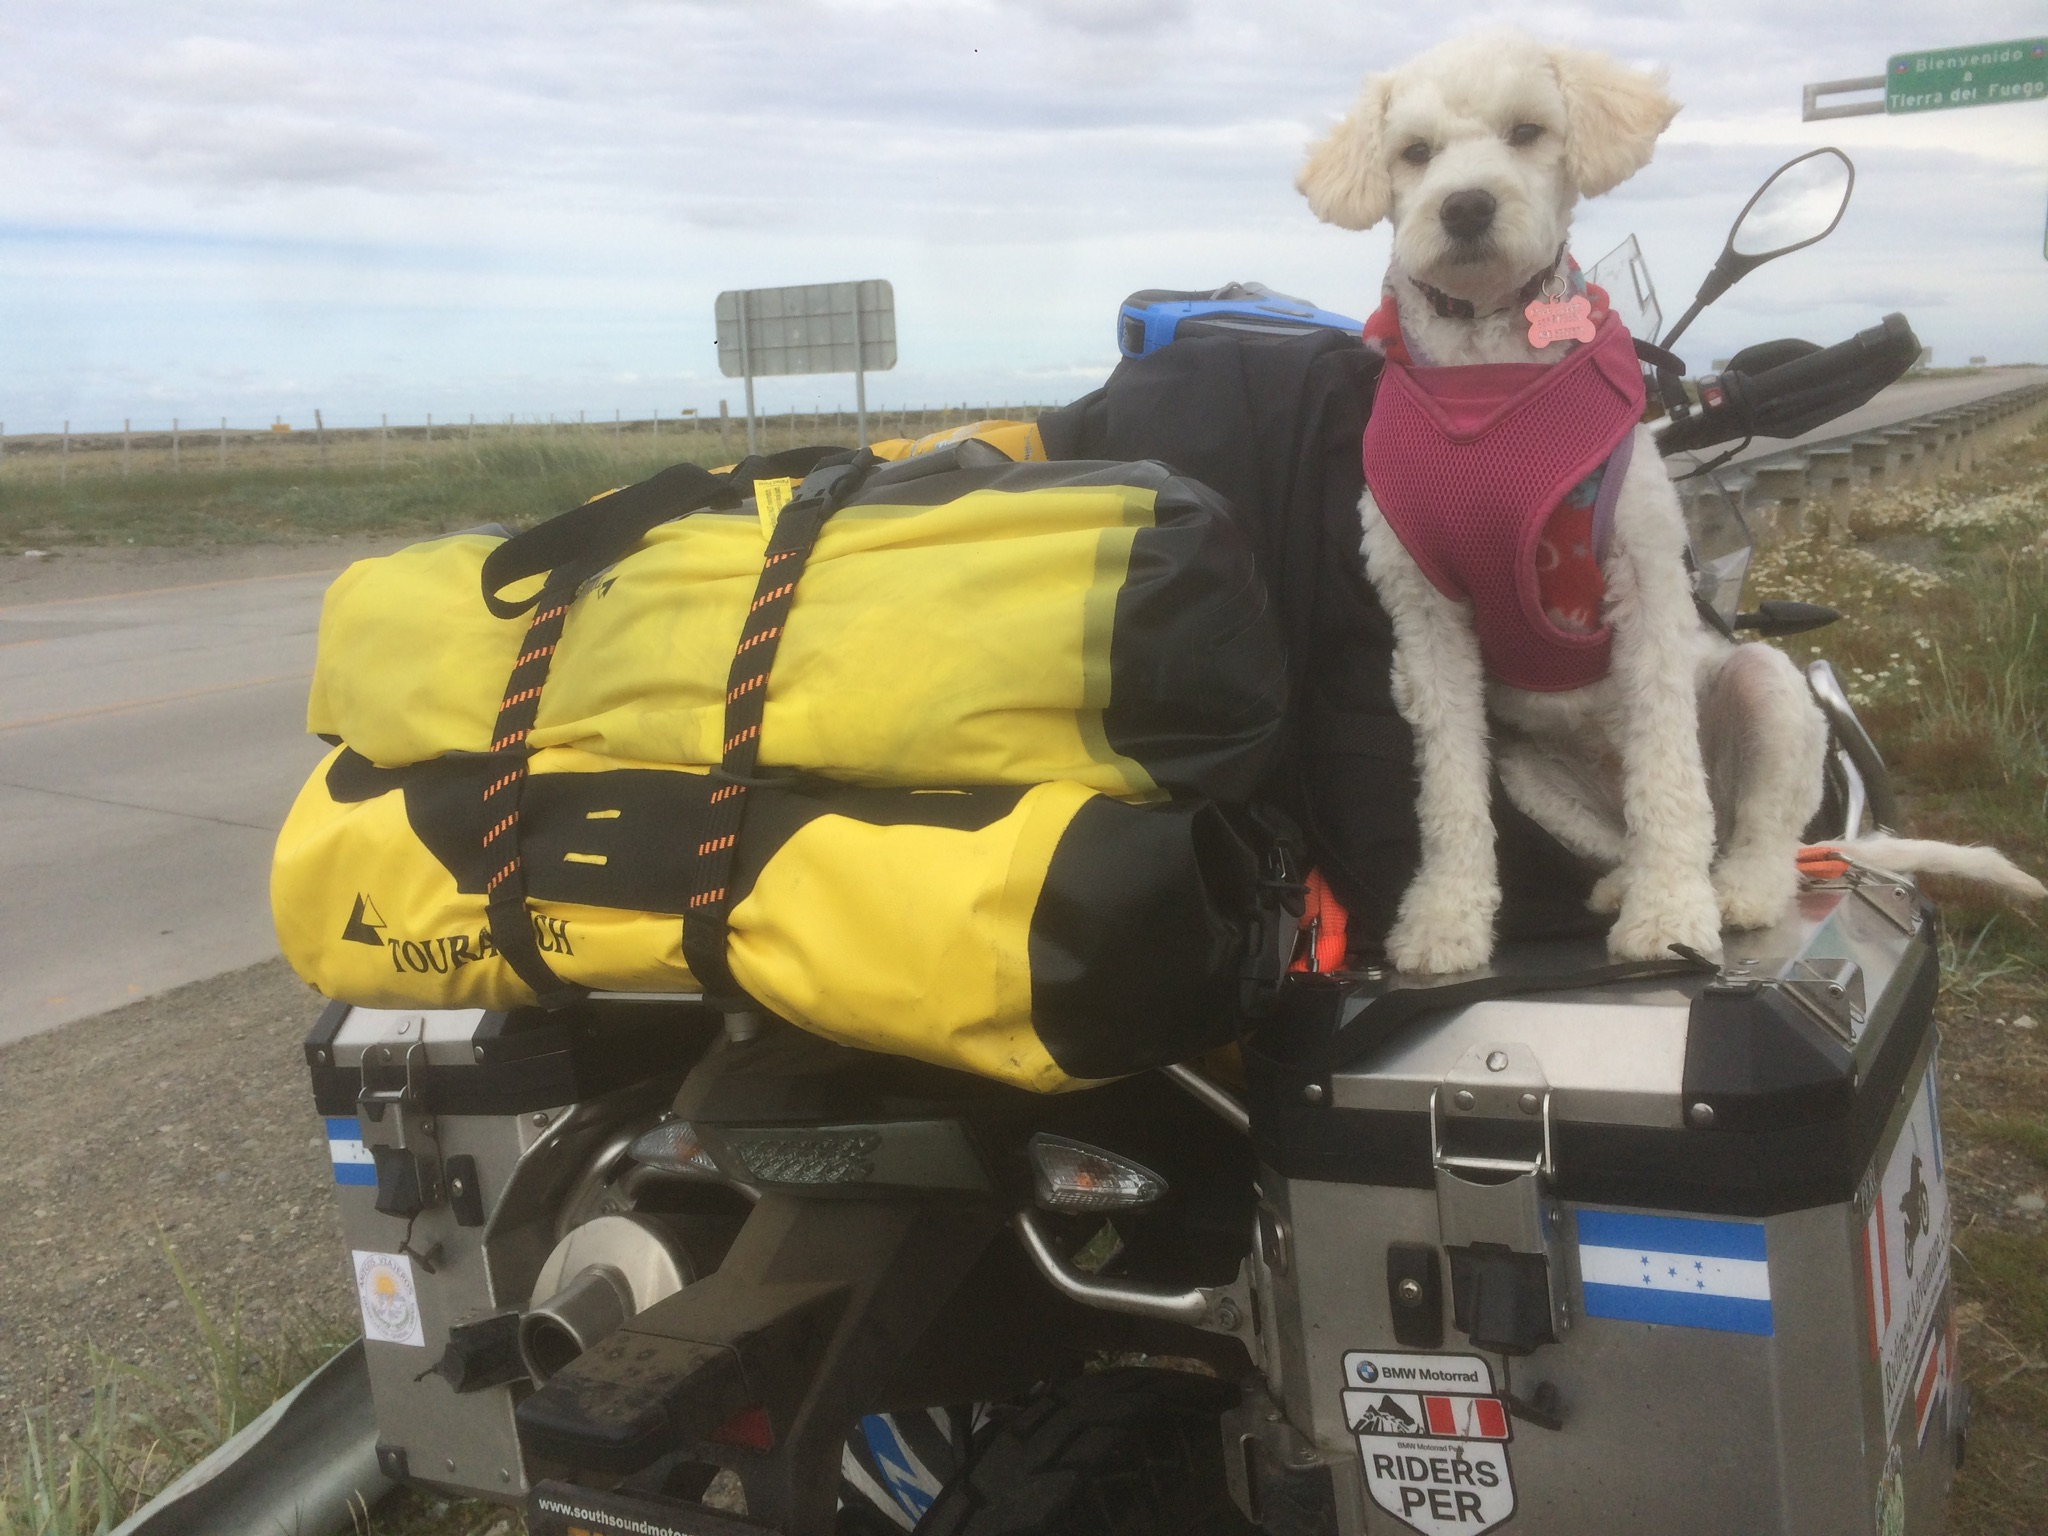 This is Suri while on the road. She traveled with me on the motorcycle to Tierra del Fuego and is now home with us in Portland.